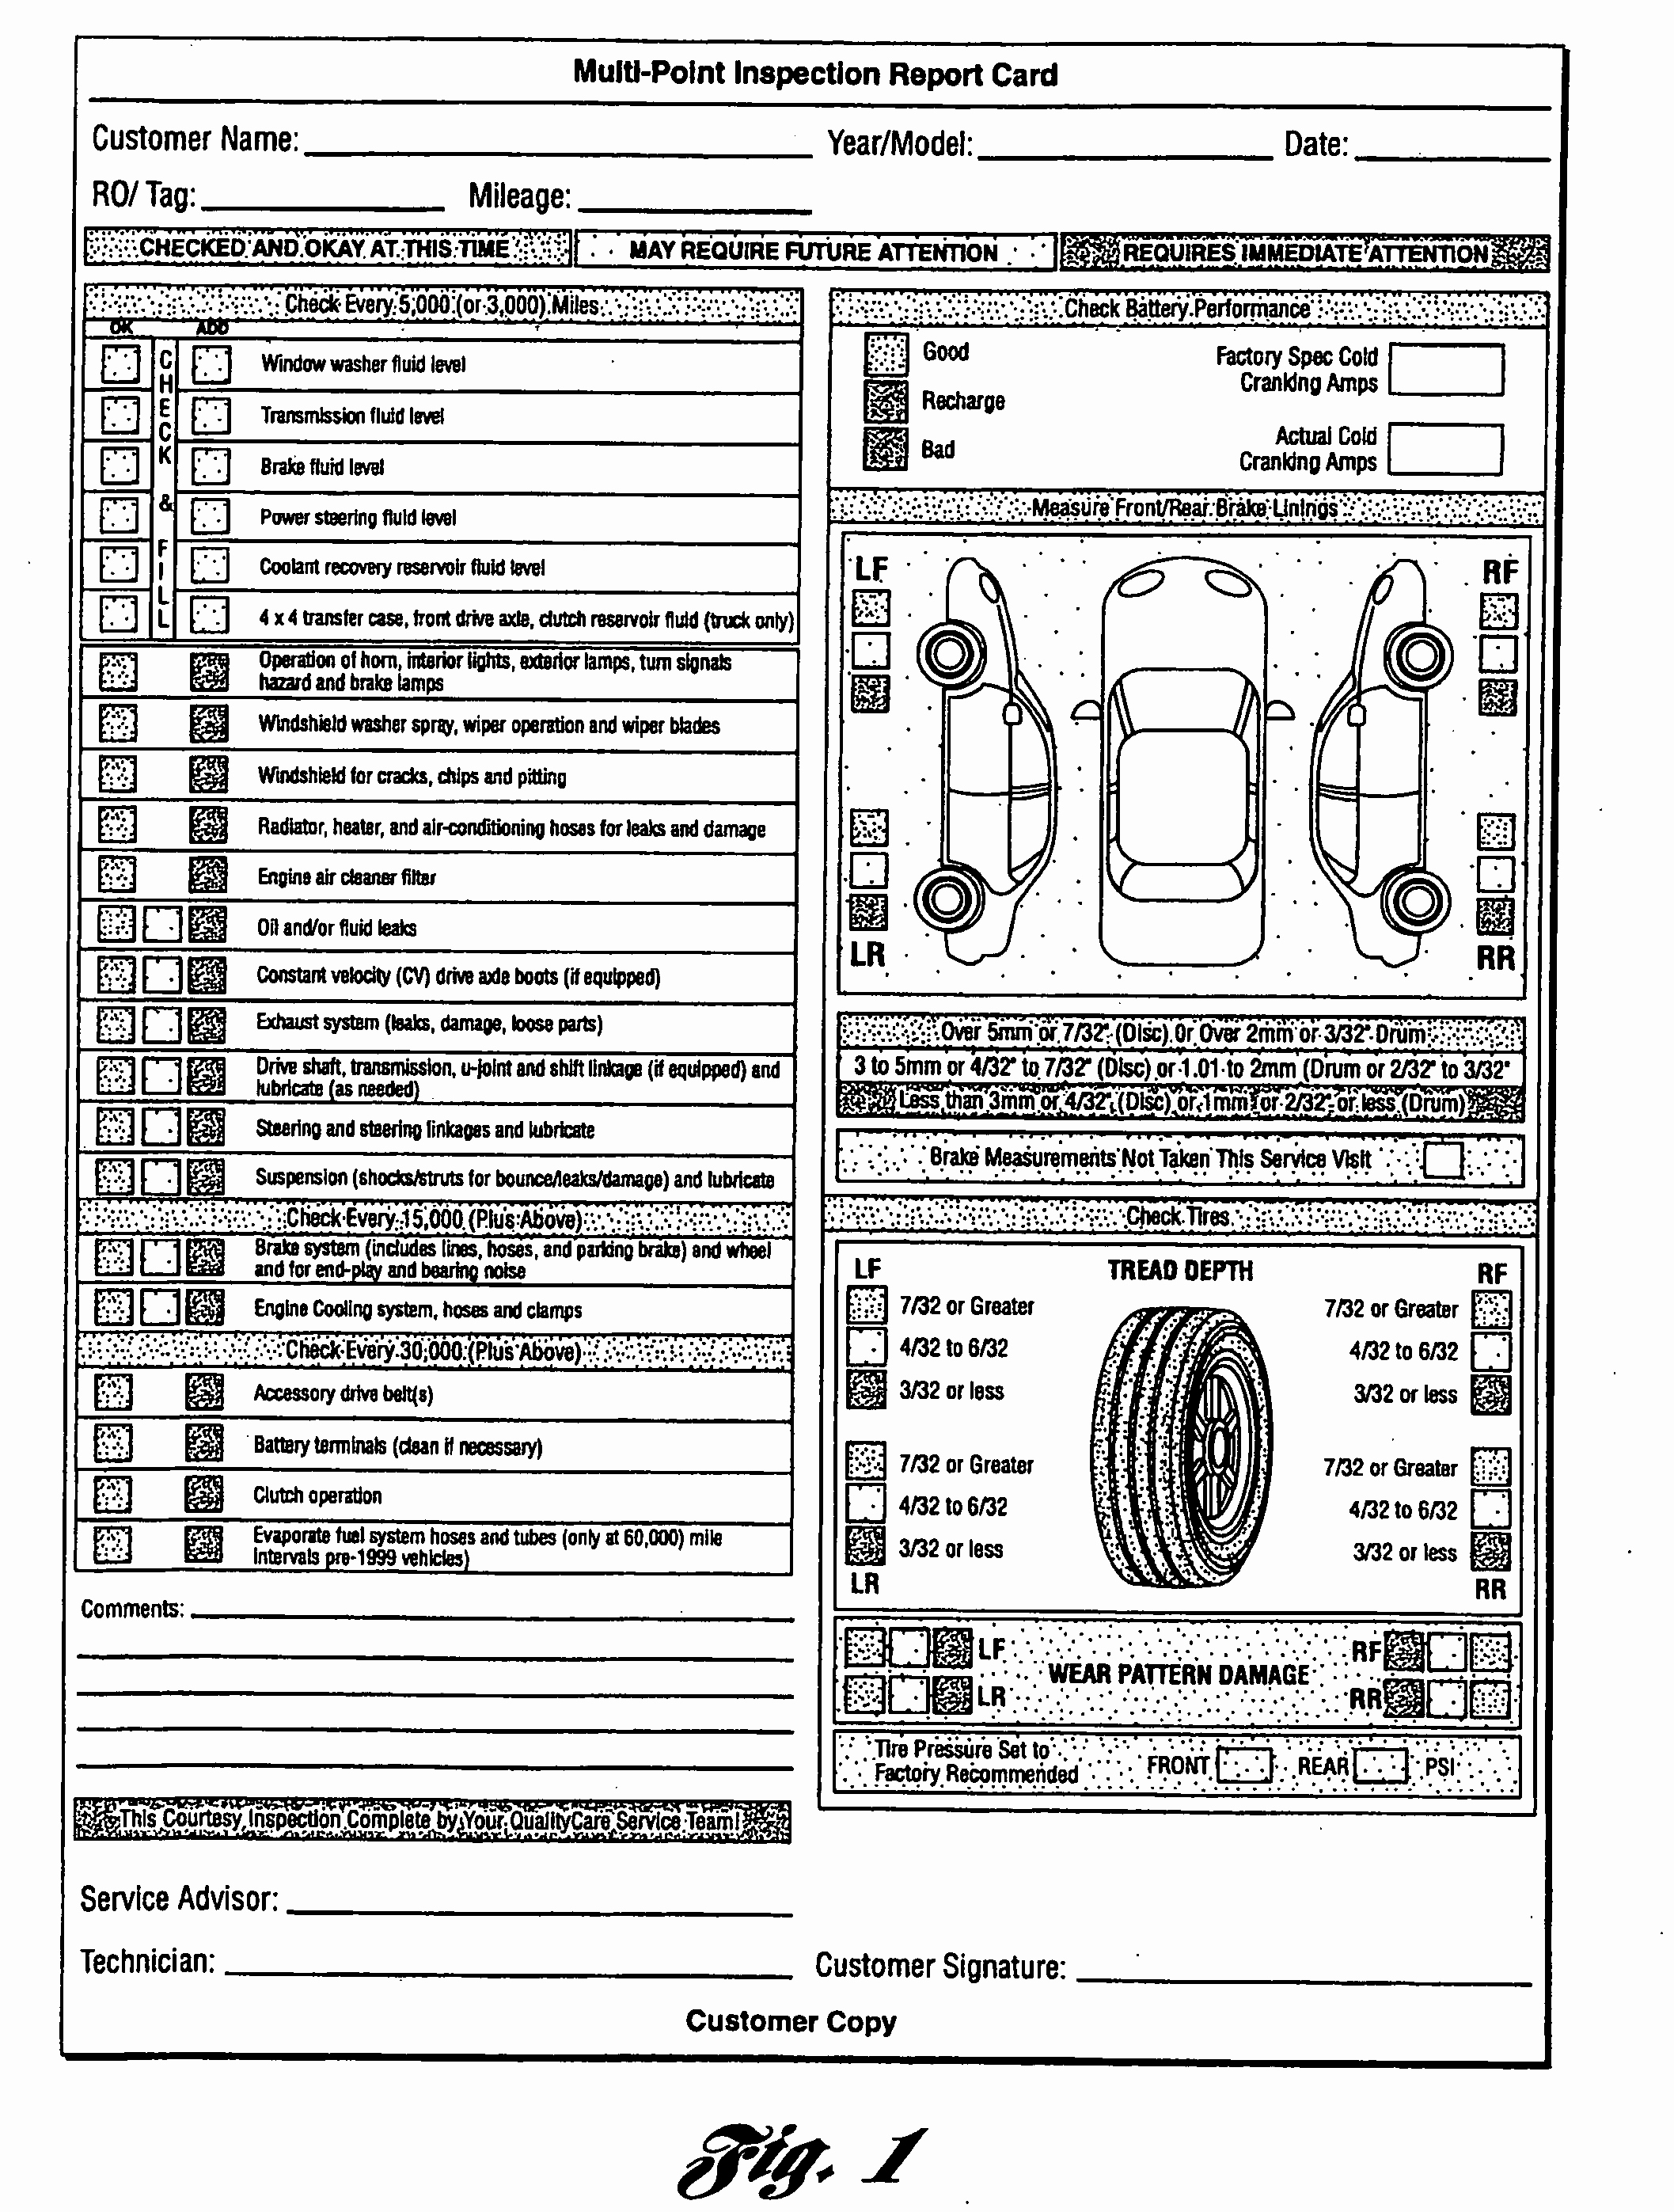 Vehicle Inspection forms Templates Beautiful Multi Point Inspection Report Card as Re Mended by ford